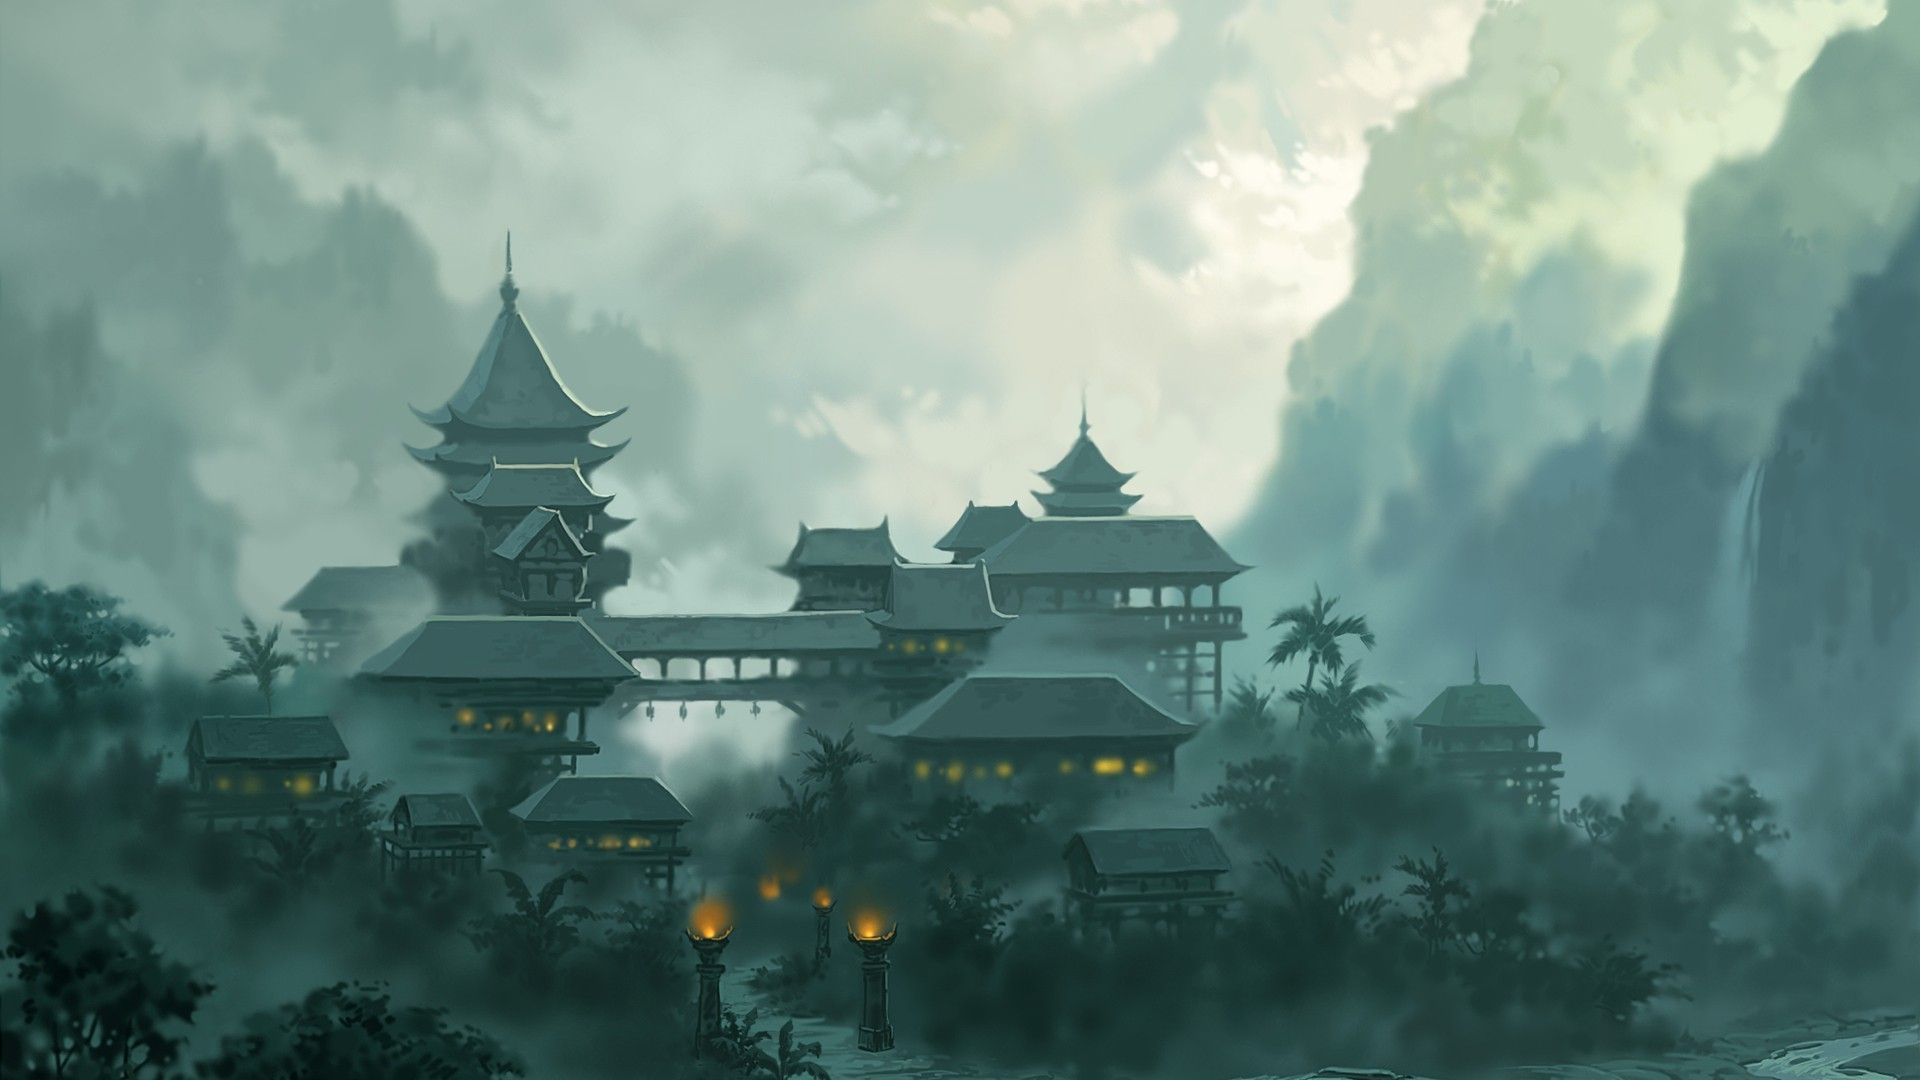 buildings landscapes mountains jungle clouds fog wallpaper background 1920x1080